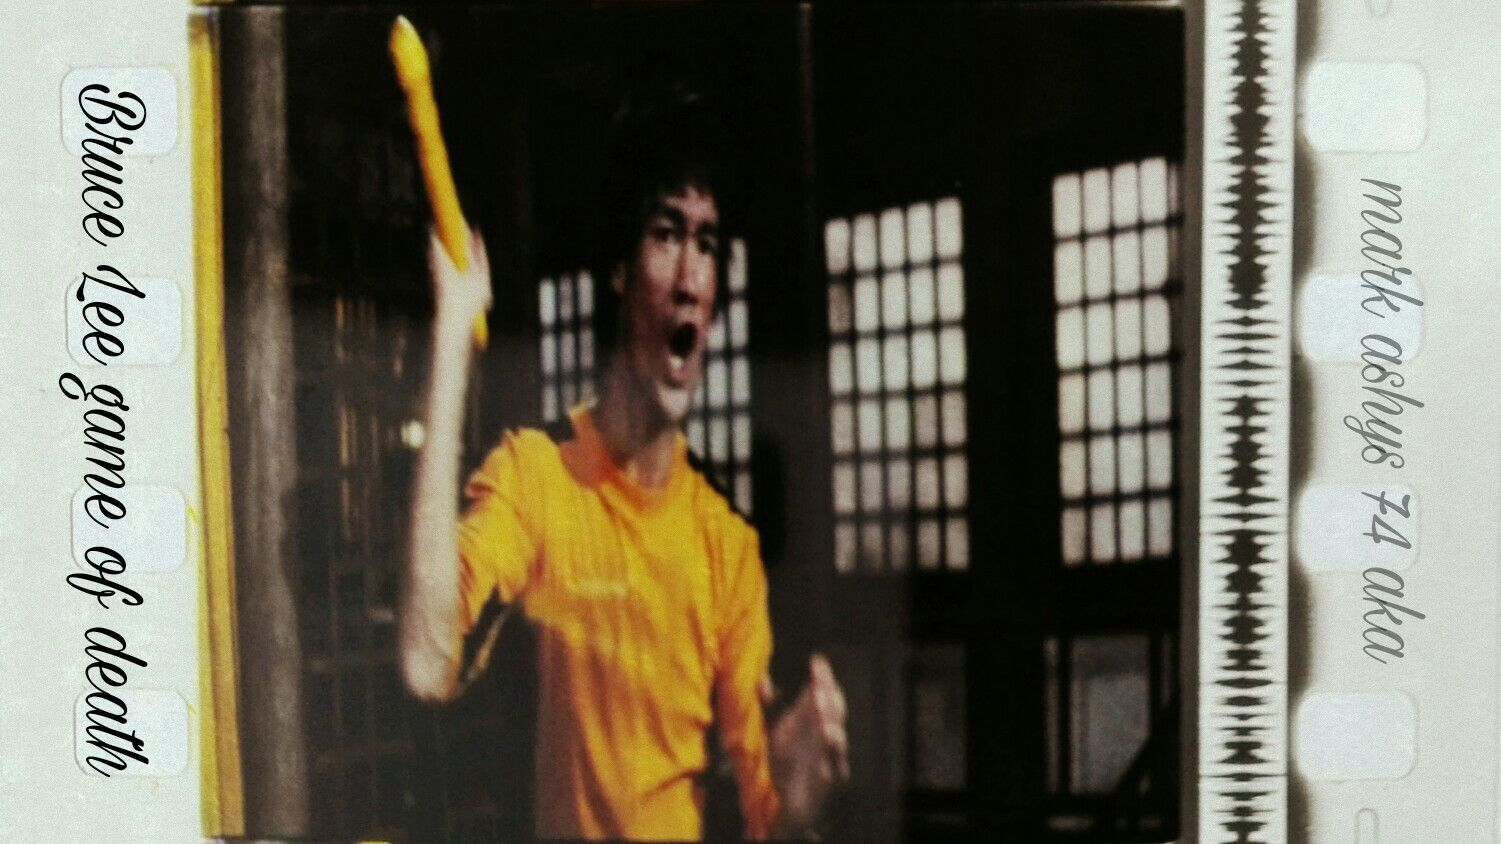 Bruce lee games image by bruce lee Dragon of jade blind on ...